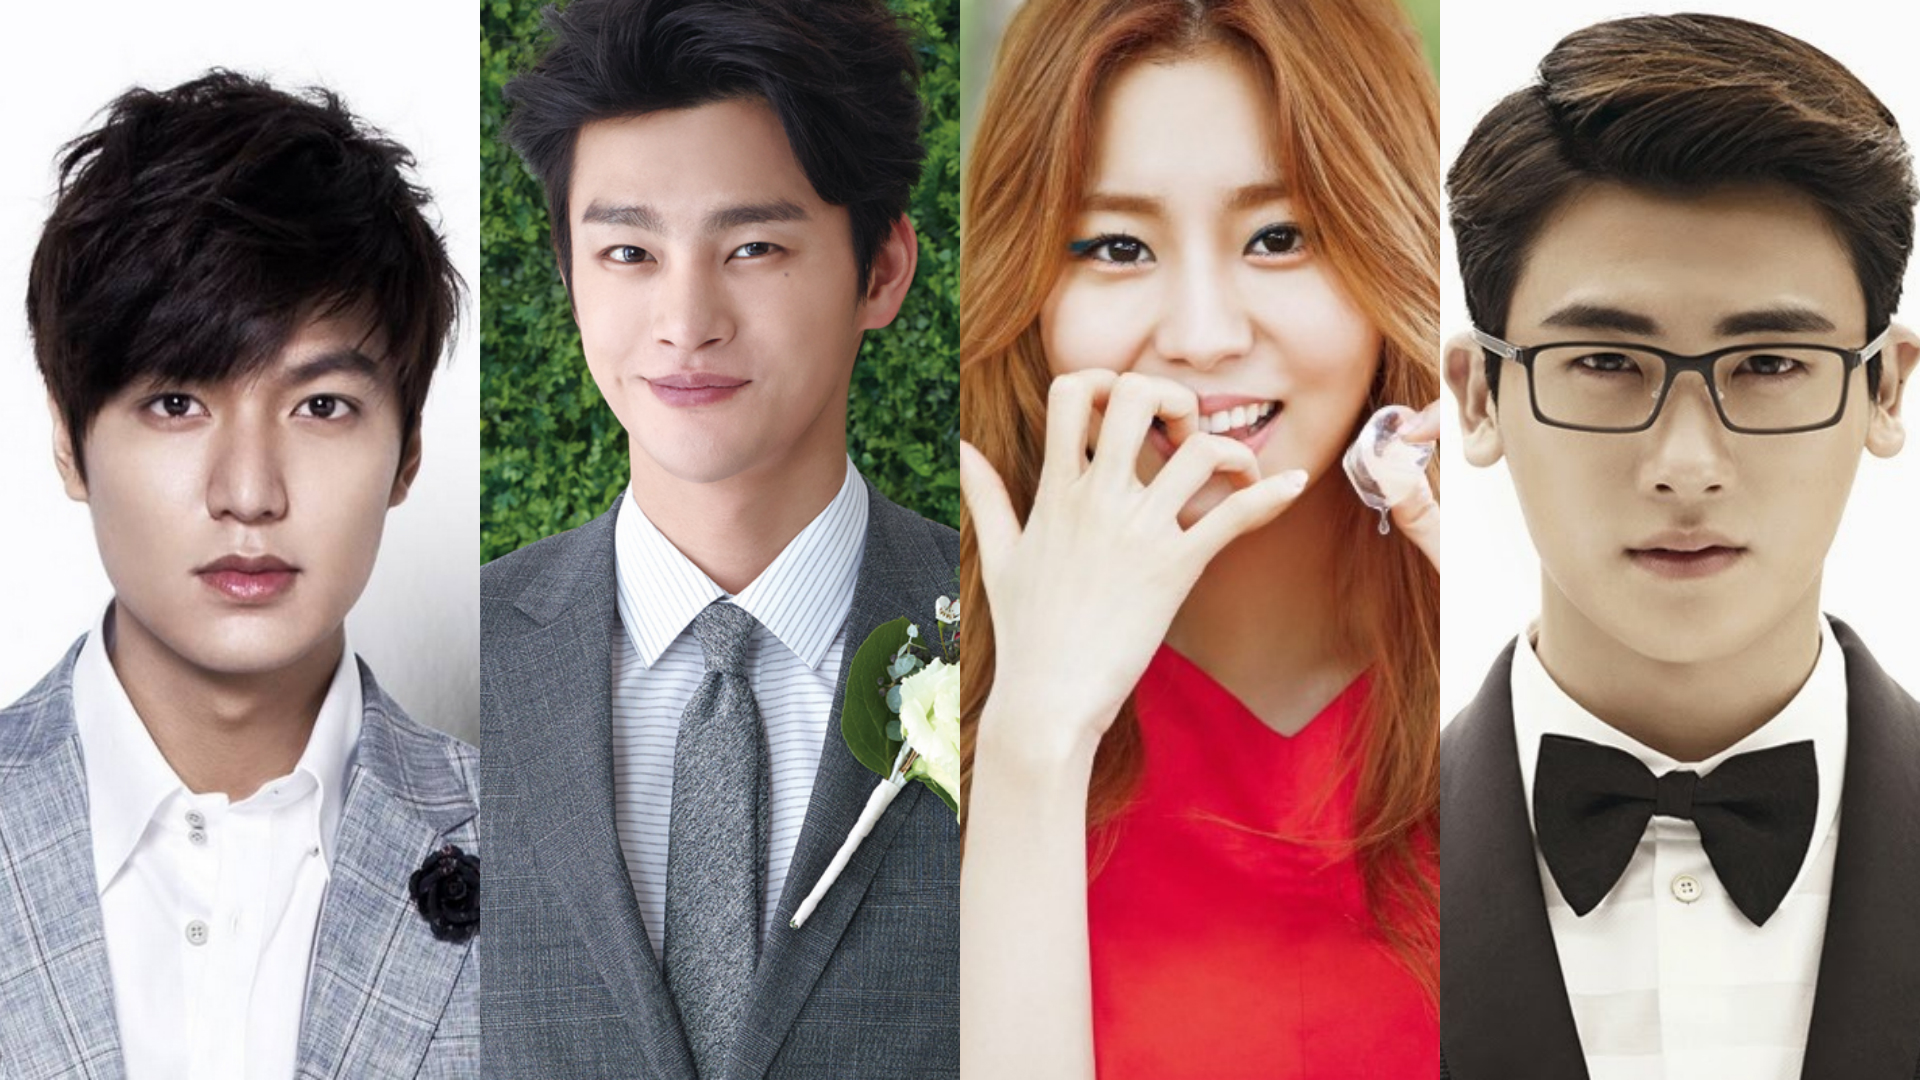 Lee Min Ho, Seo In Guk, UEE, Park Hyung Sik, and More to Attend Seoul Drama Awards